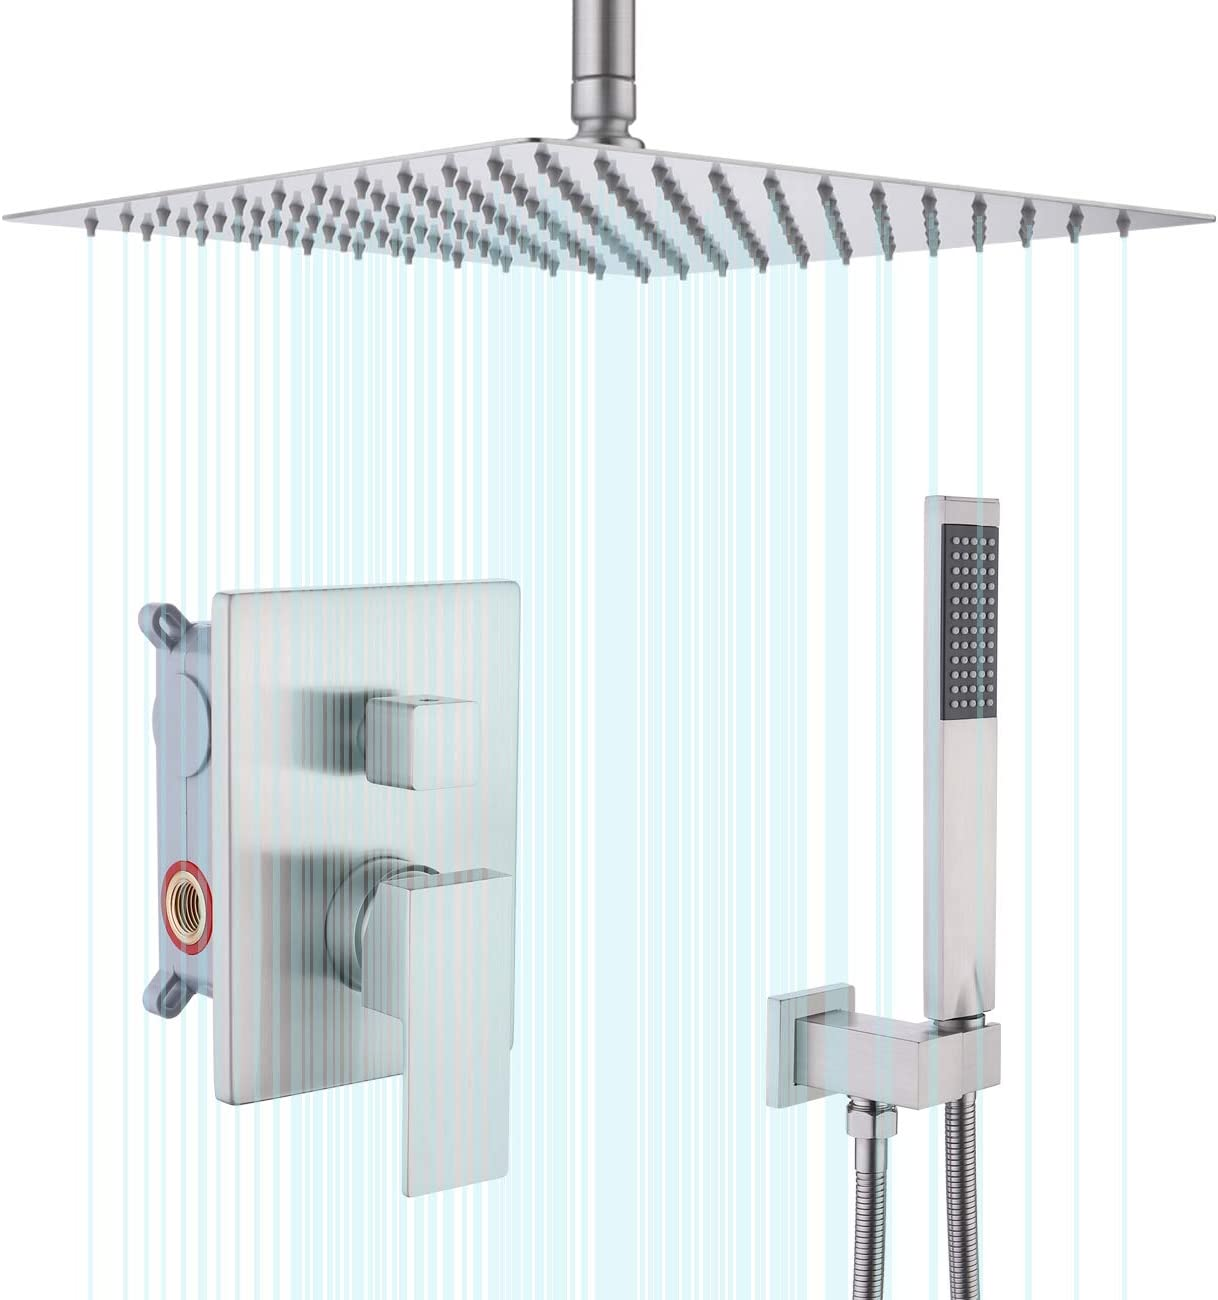 KES Shower System Ceiling Shower Head 12 Inch Rainfall Shower Head with Handheld Shower Faucets Sets Complete Shower Valve and Trim Kit Brushed Finish, XB6235S12-BN